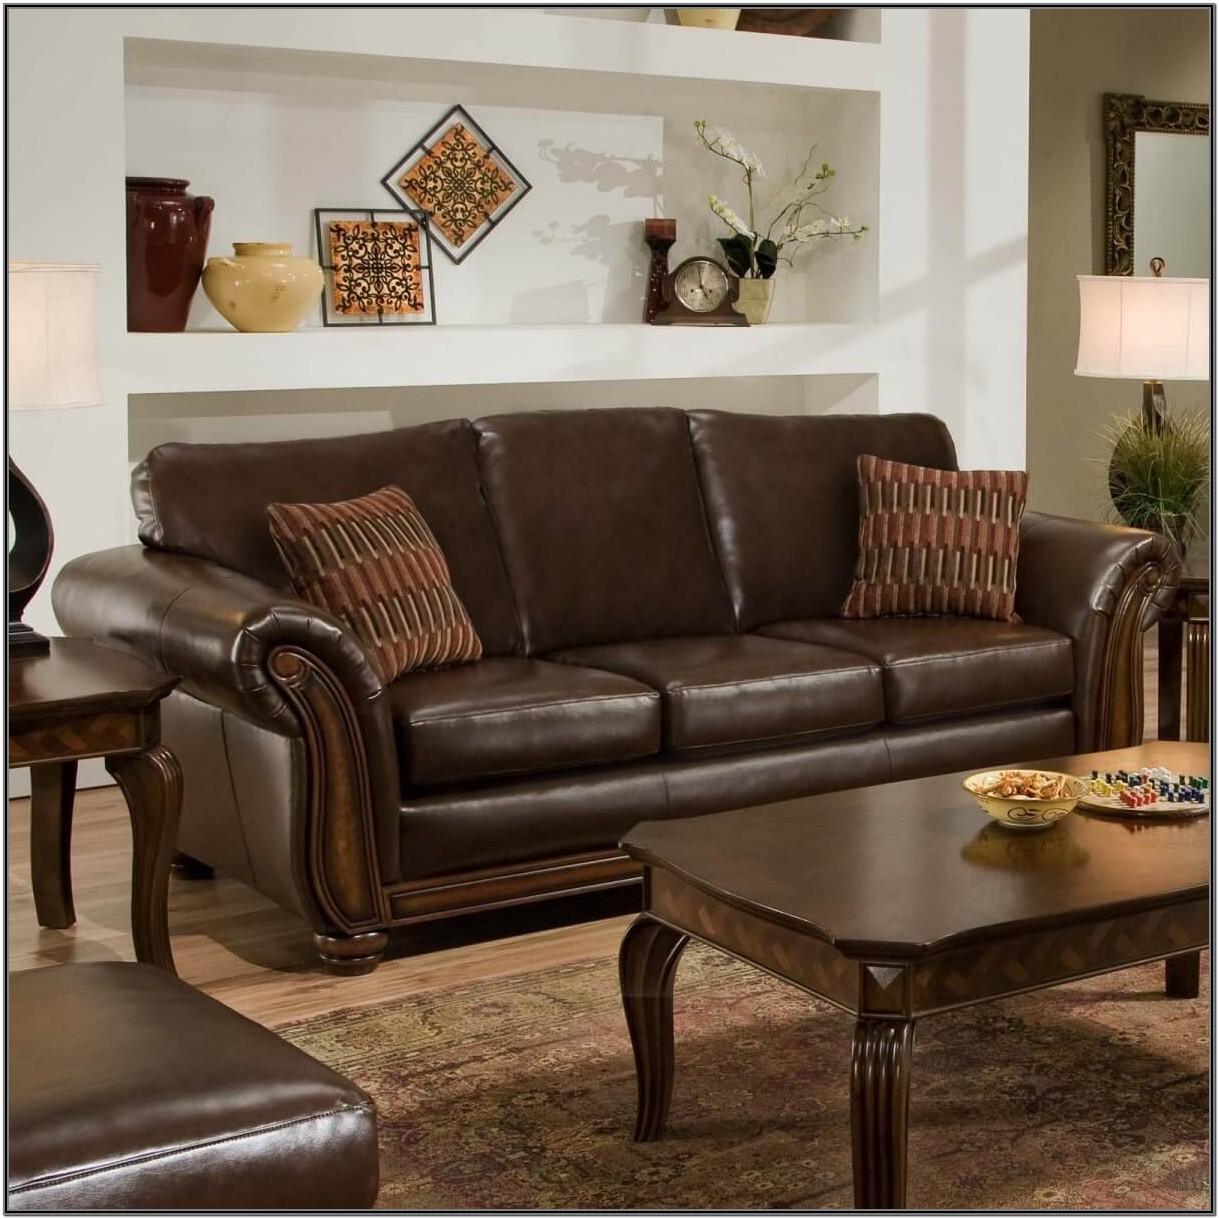 Living Room Color Ideas With Brown Leather Furniture